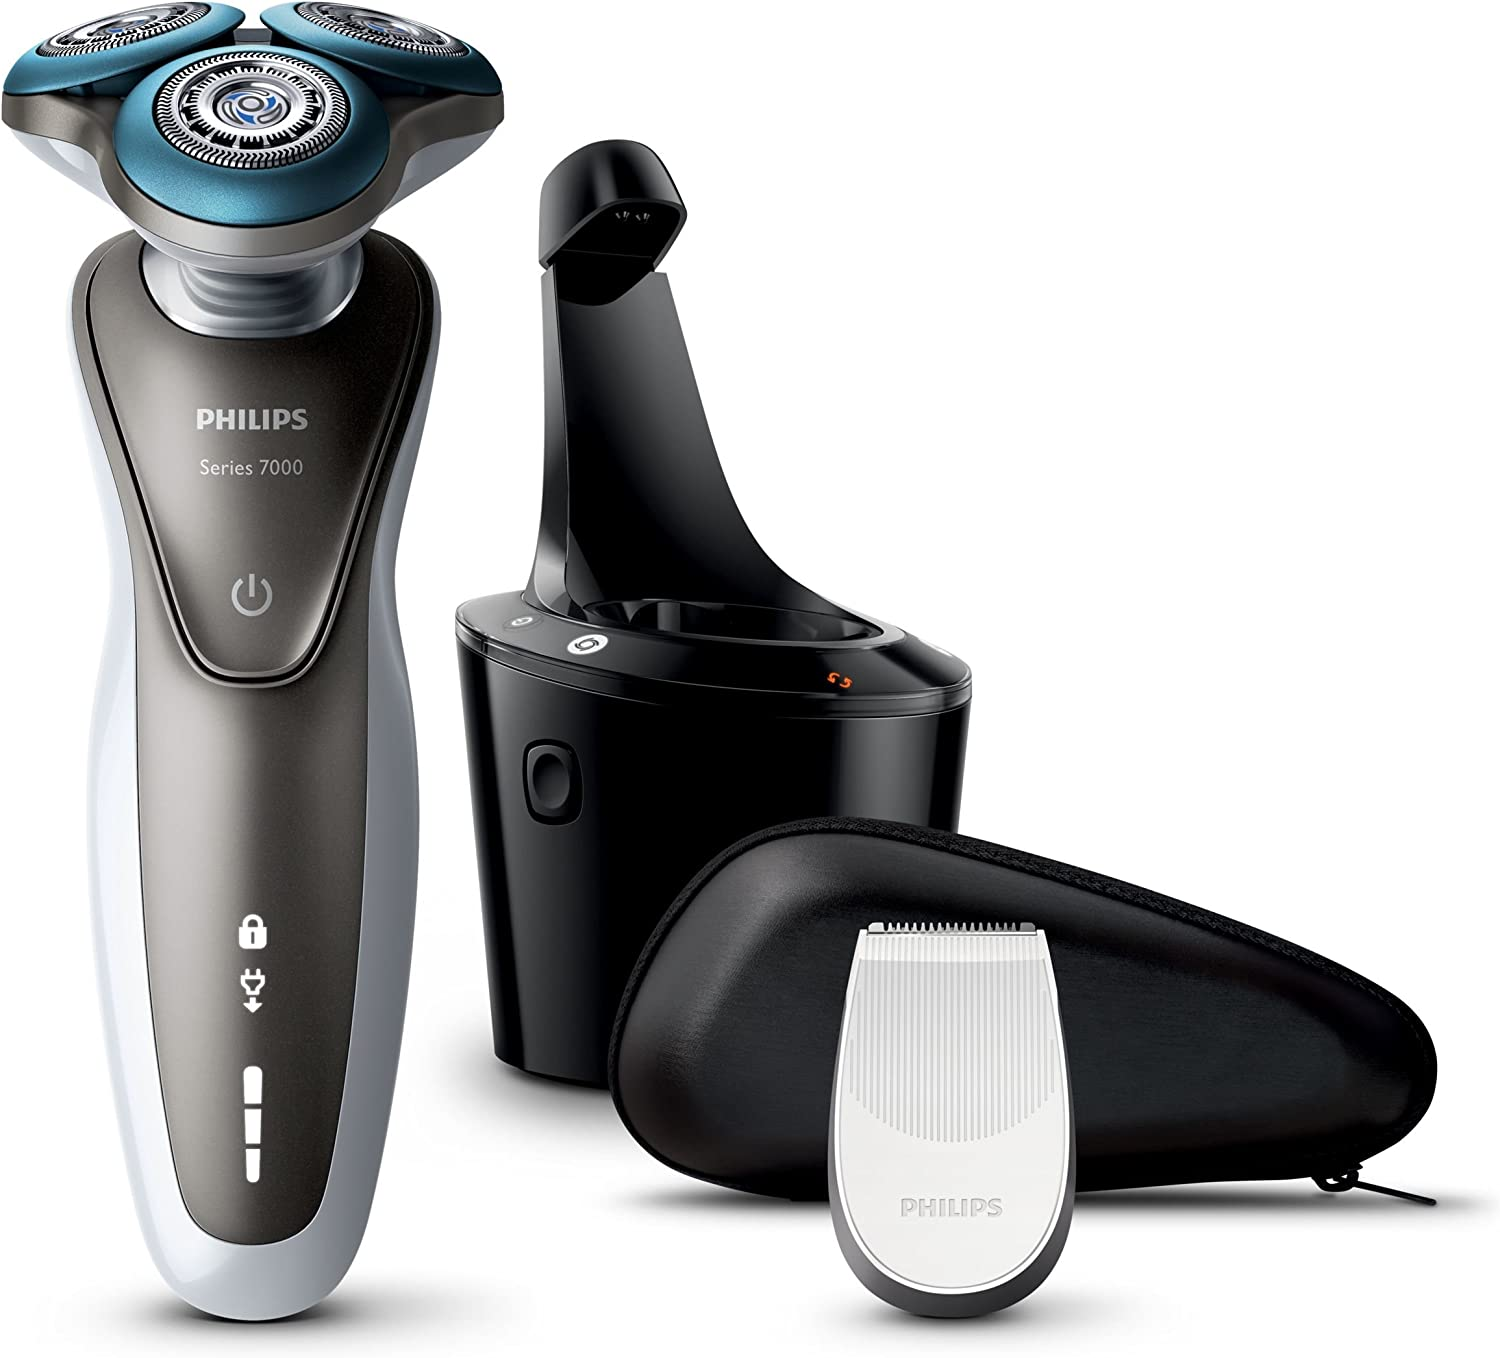 Philips SHAVER SERIES 7000 S772026 Rotation Gehweg Bronze